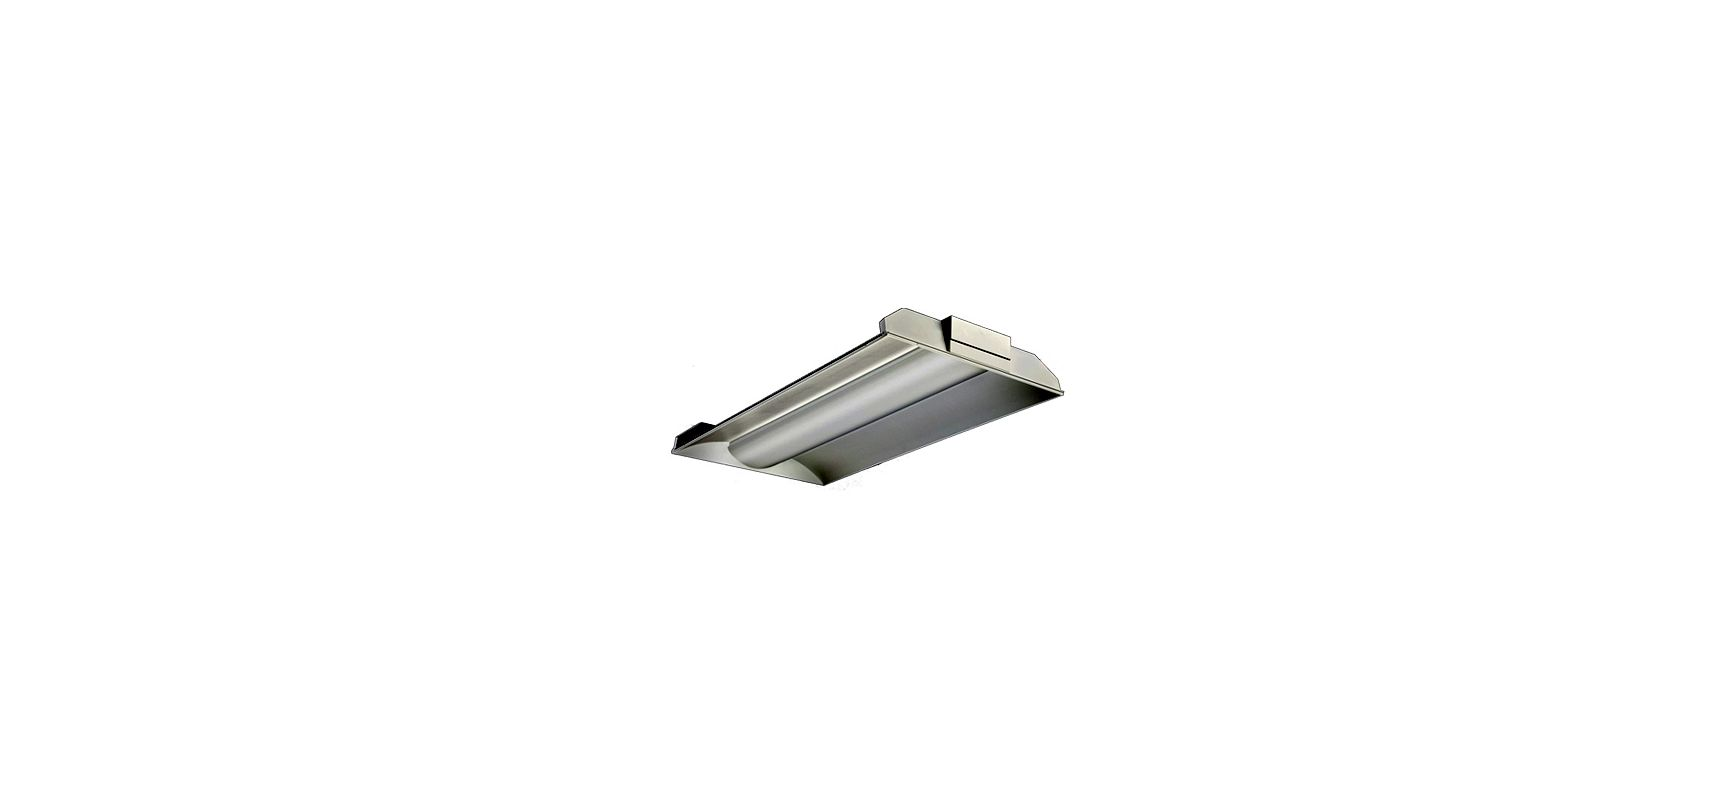 Lithonia Lighting 2VT8 2 17 ADP MVOLT GEB10IS 2 Light Linear Recessed